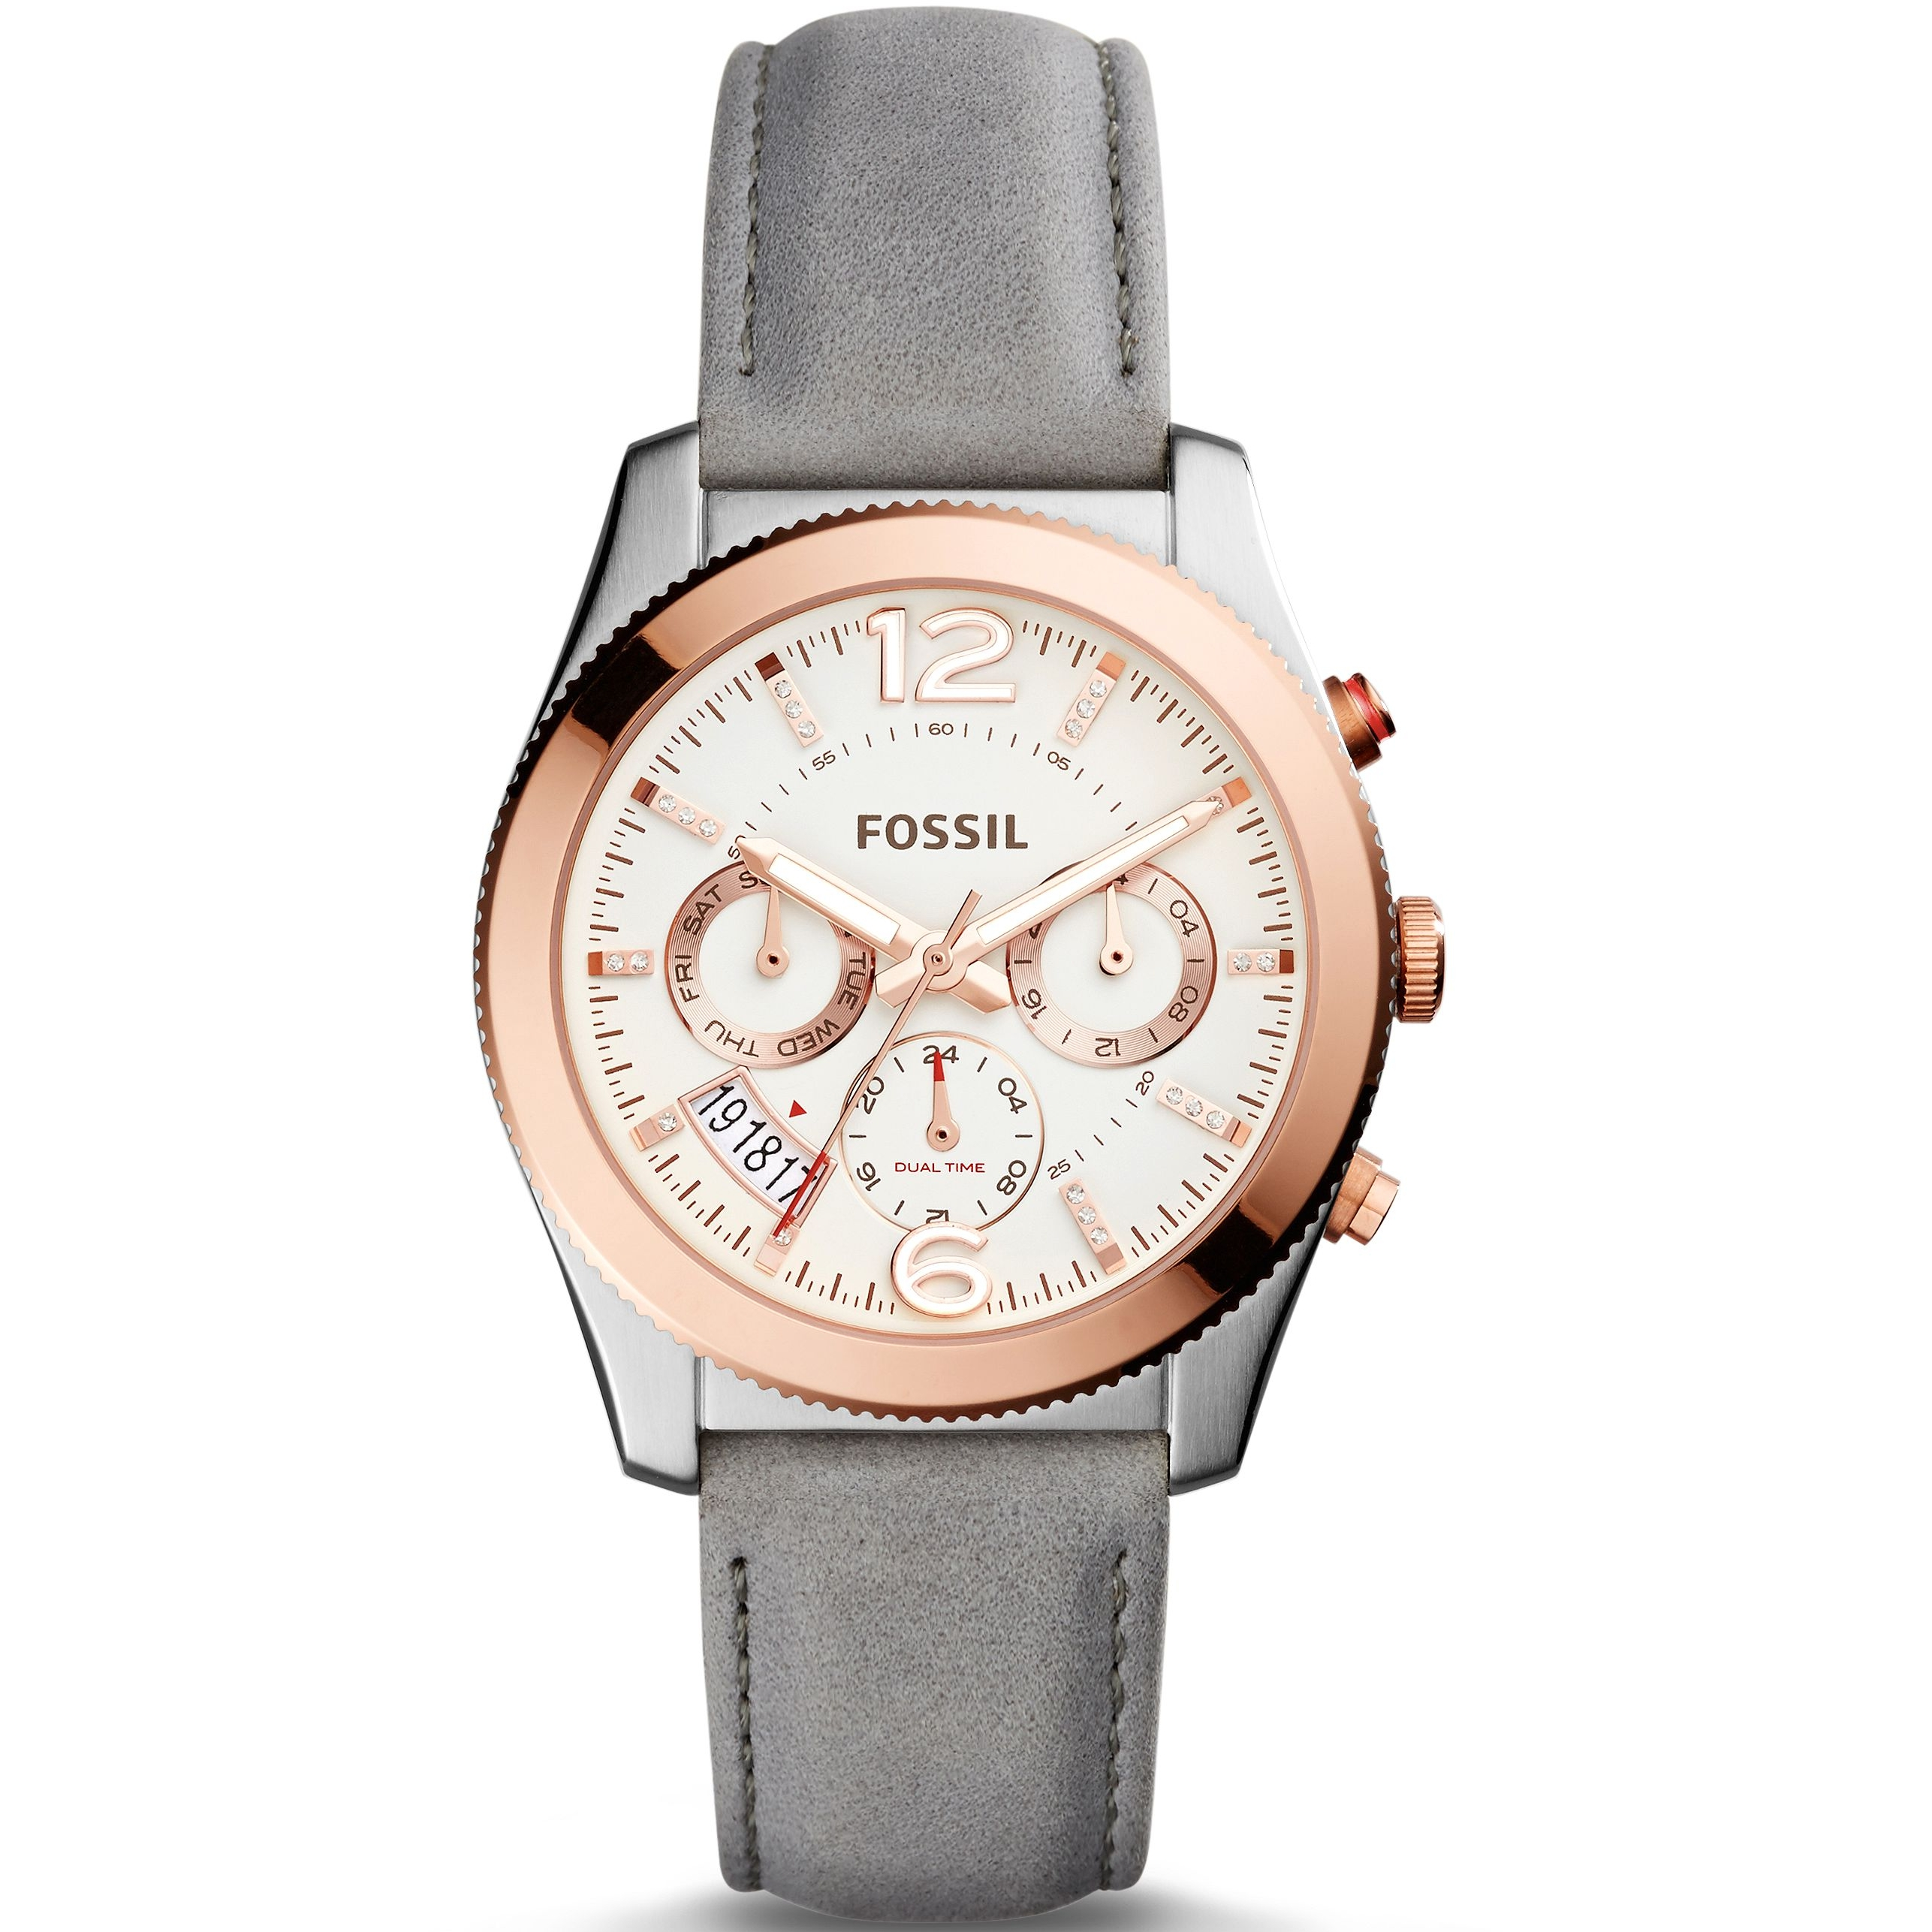 blackburn for watches the blind living blinds wrist gents daily ladies society